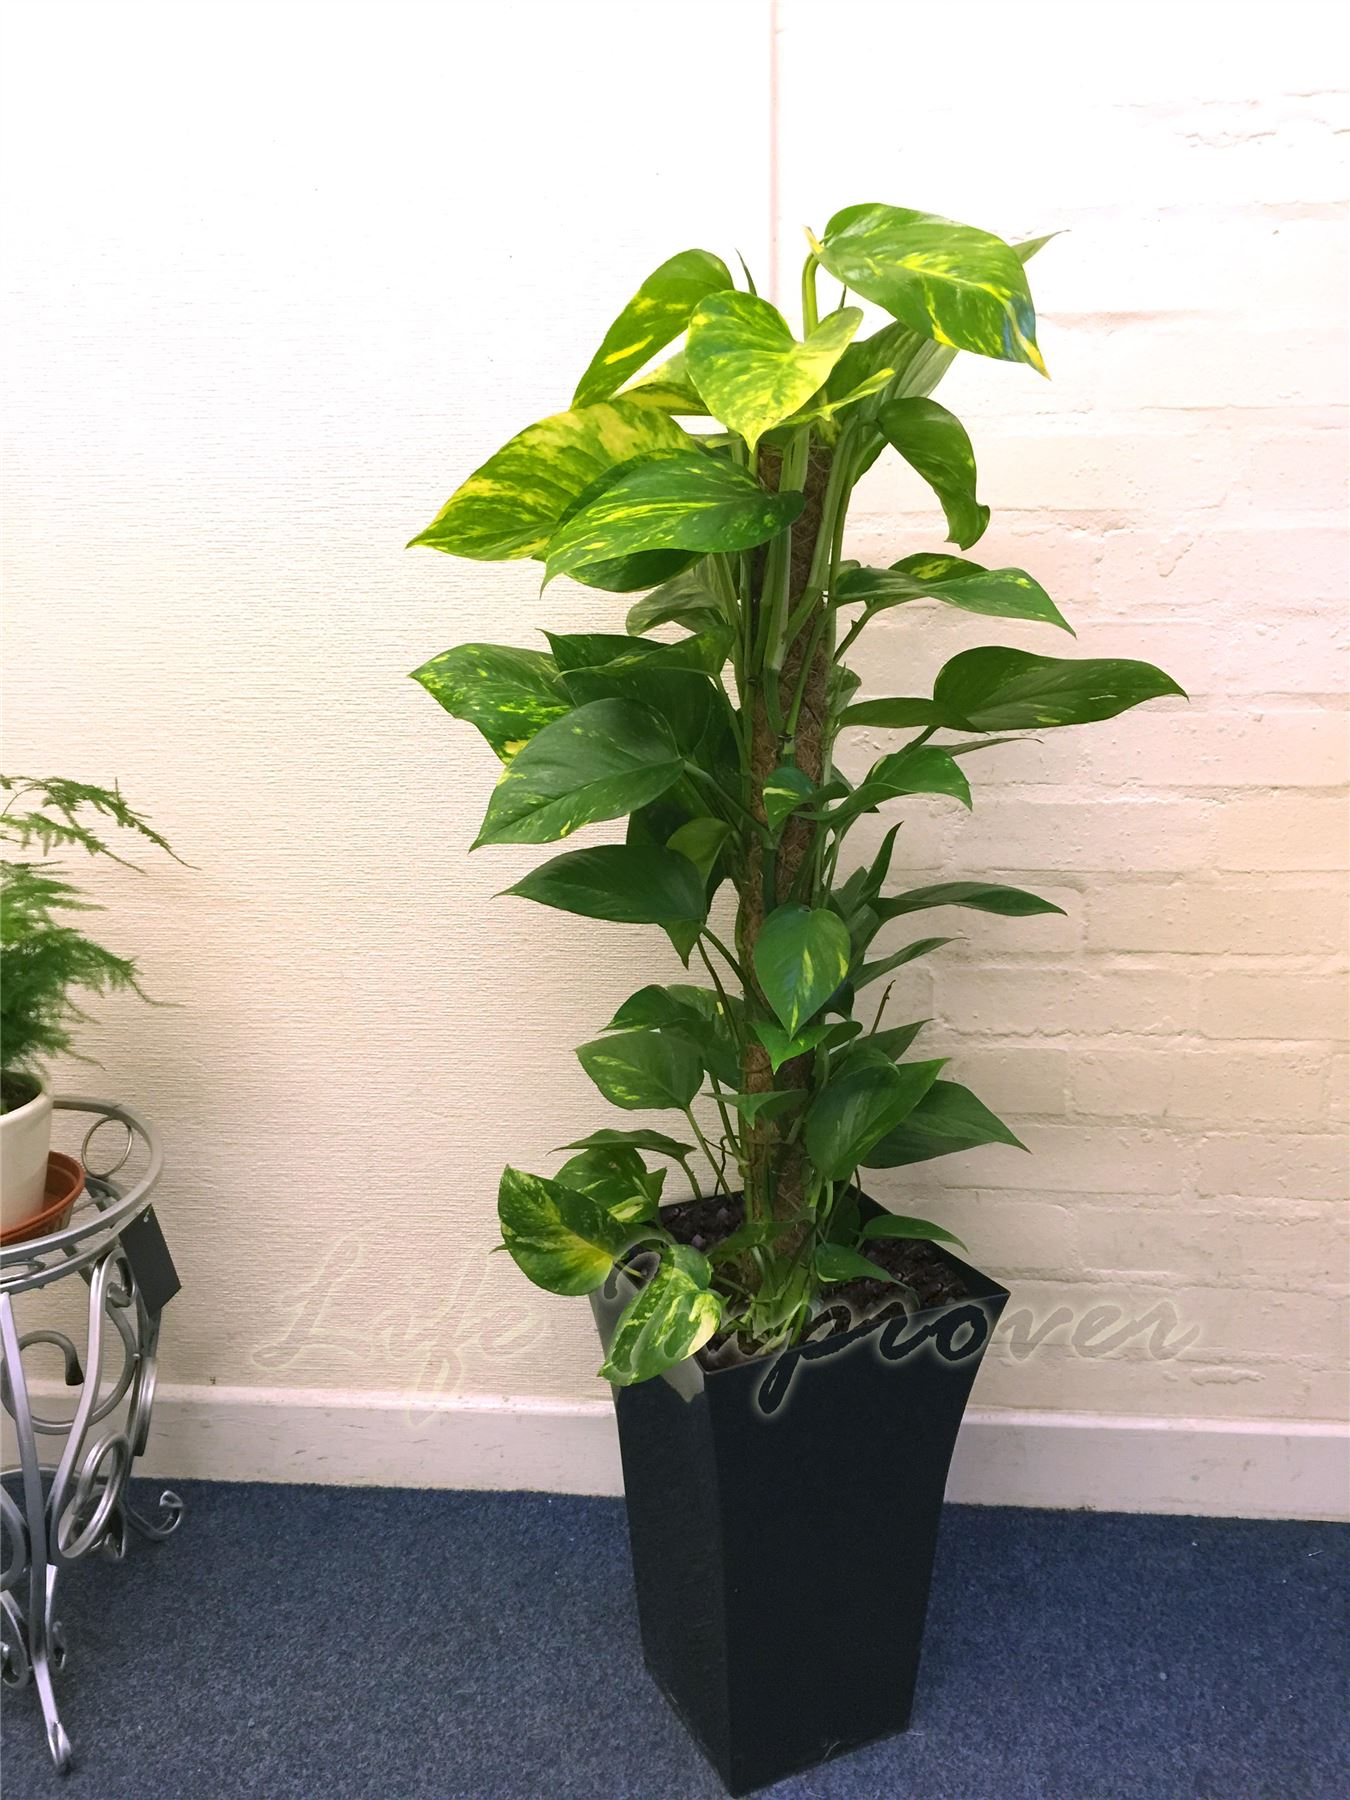 1 large indoor tree milano gloss pot office house conservatory evergreen plant ebay - Best tall indoor house plants ...